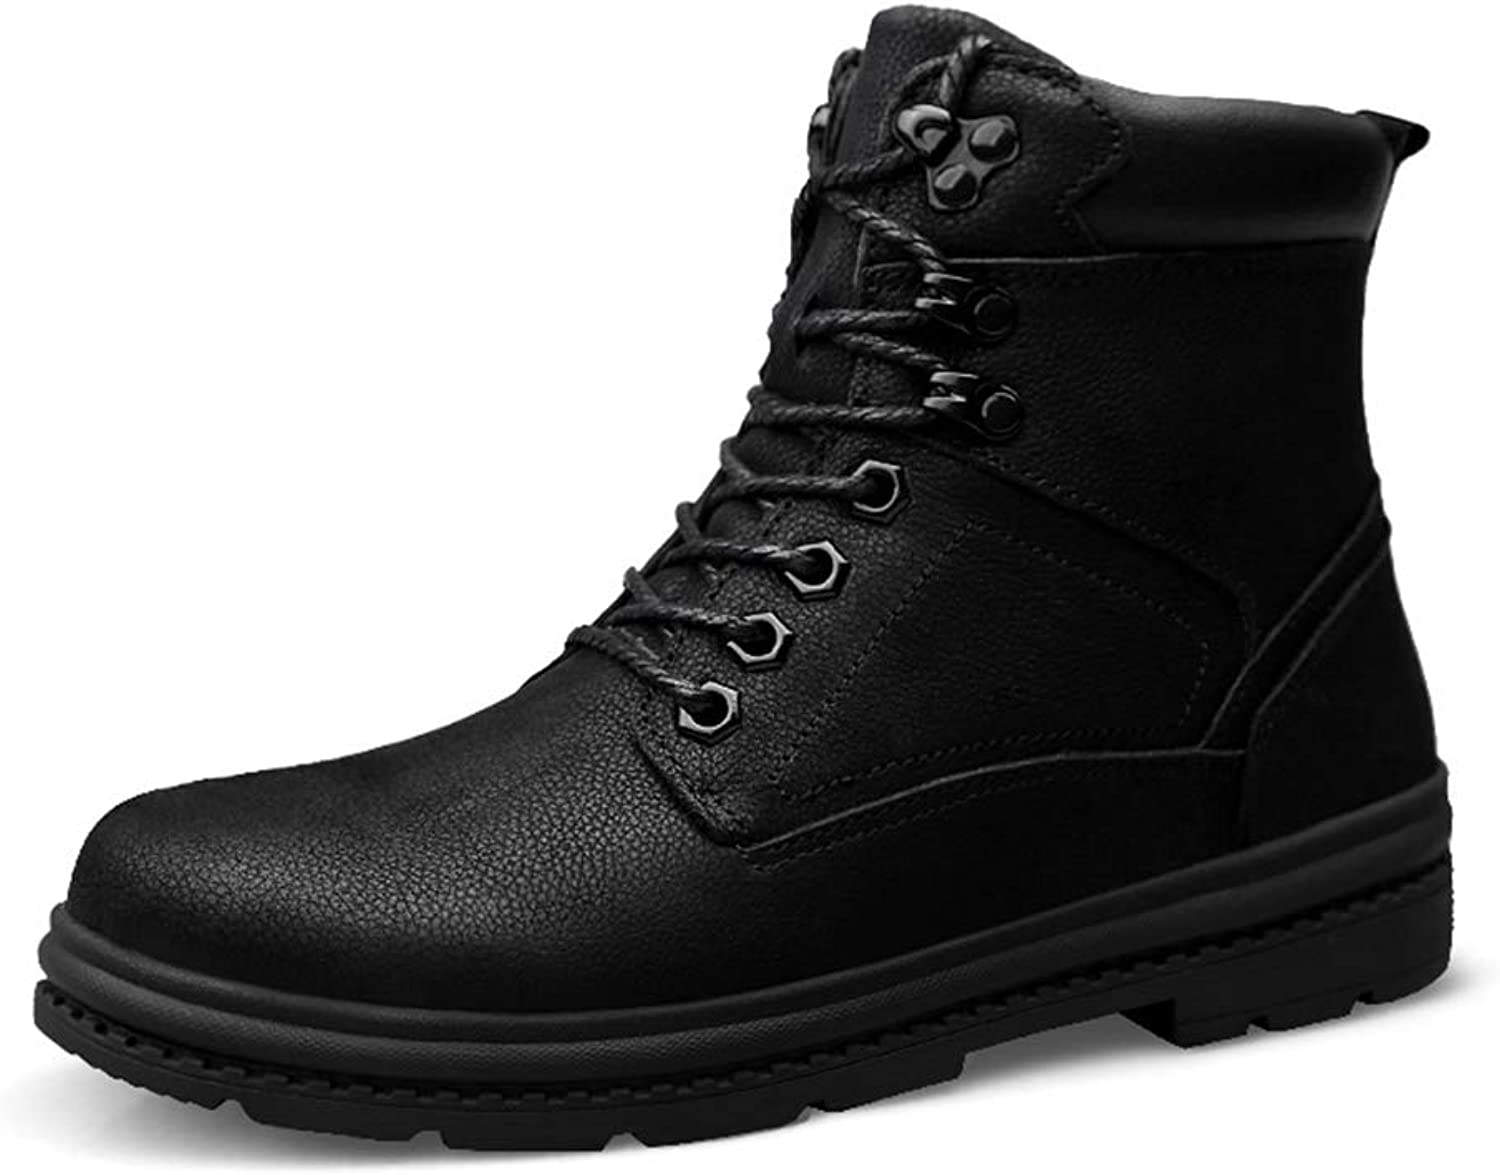 Xujw-shoes Men's Ankle Work Boots, Fashion Casual Winter Classic British Style Fleece Inside Warm High Top Boot